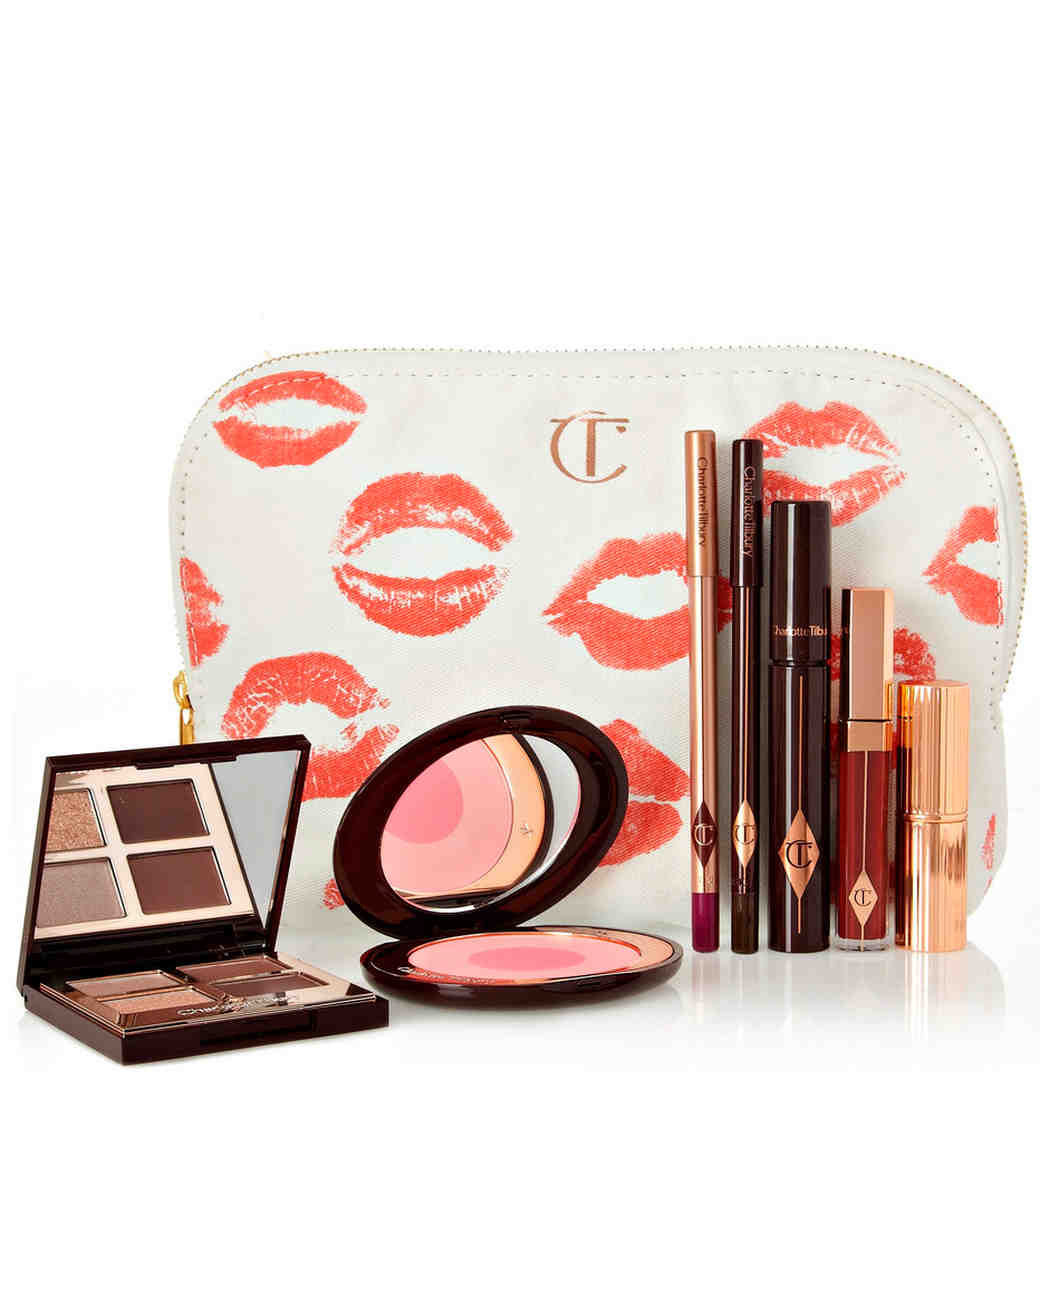 bridesmaid-gifts-charlotte-tilbury-0914.jpg